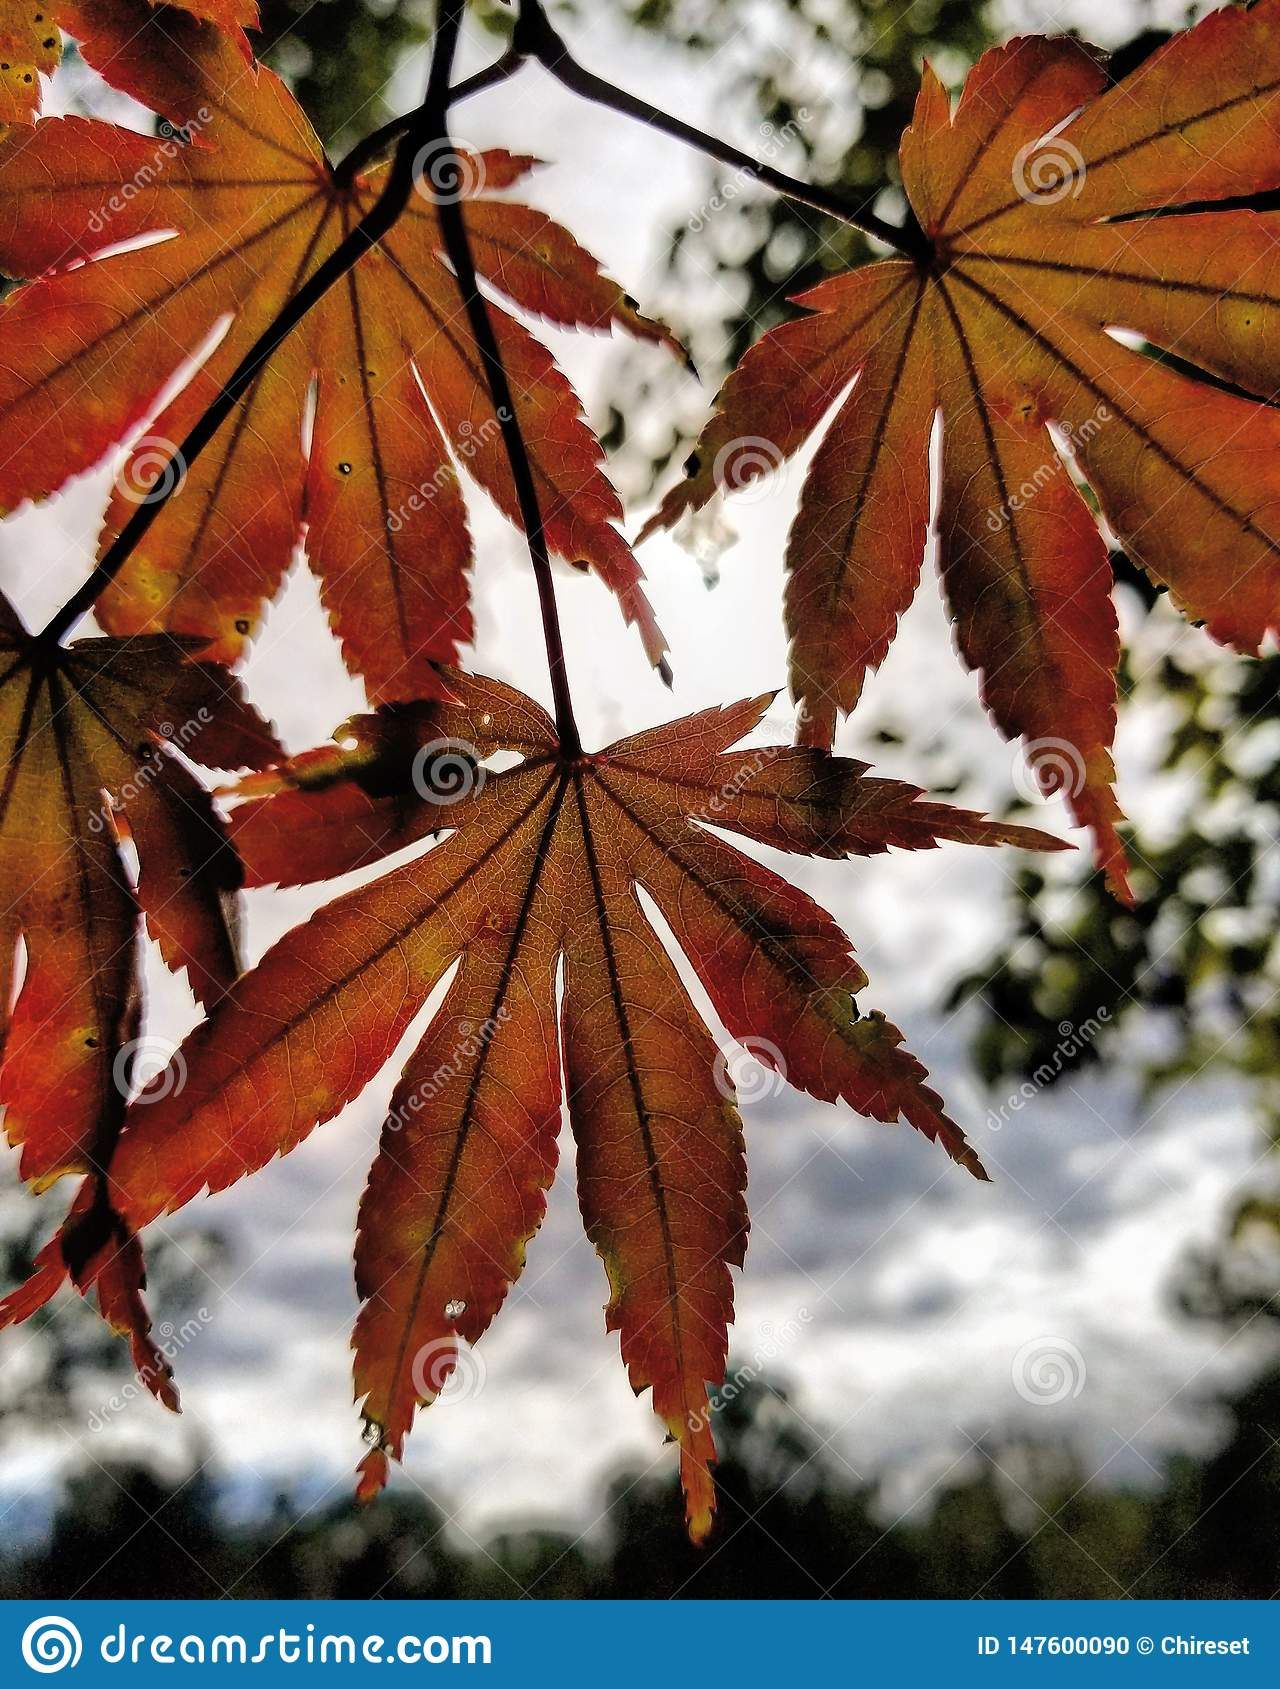 Autumn leaves against the clouds